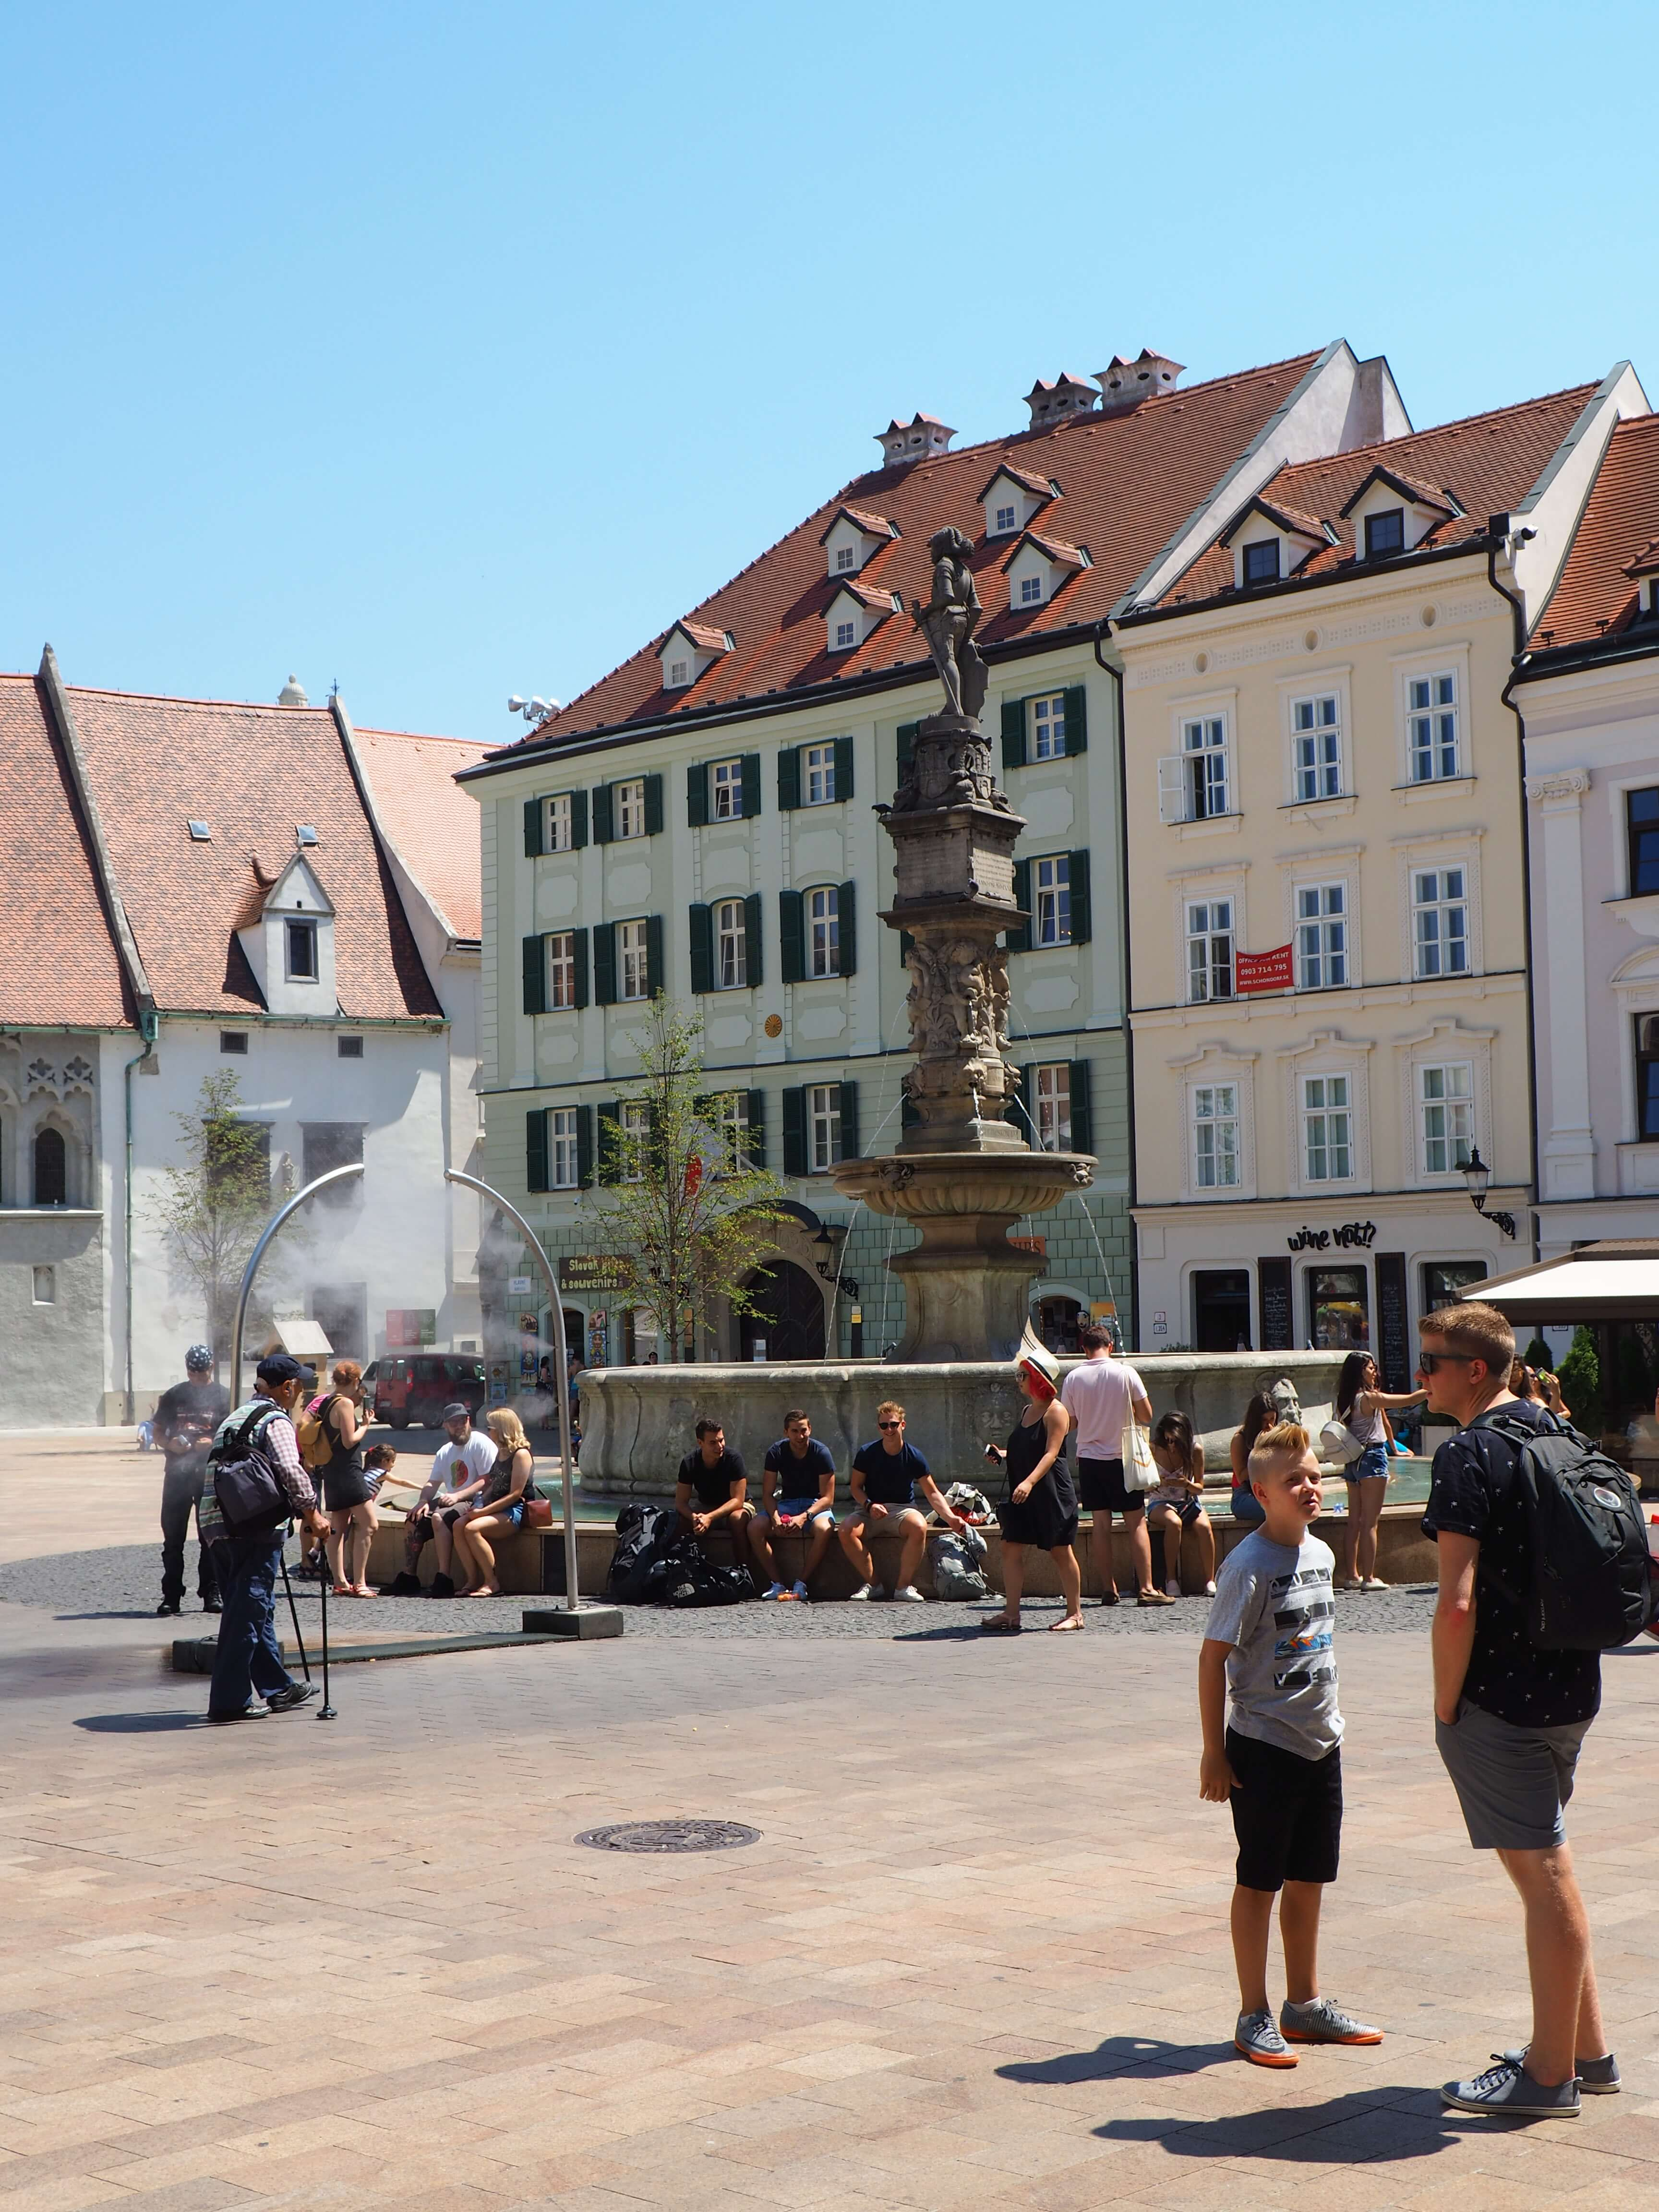 View of Bratislava town square and fountain.